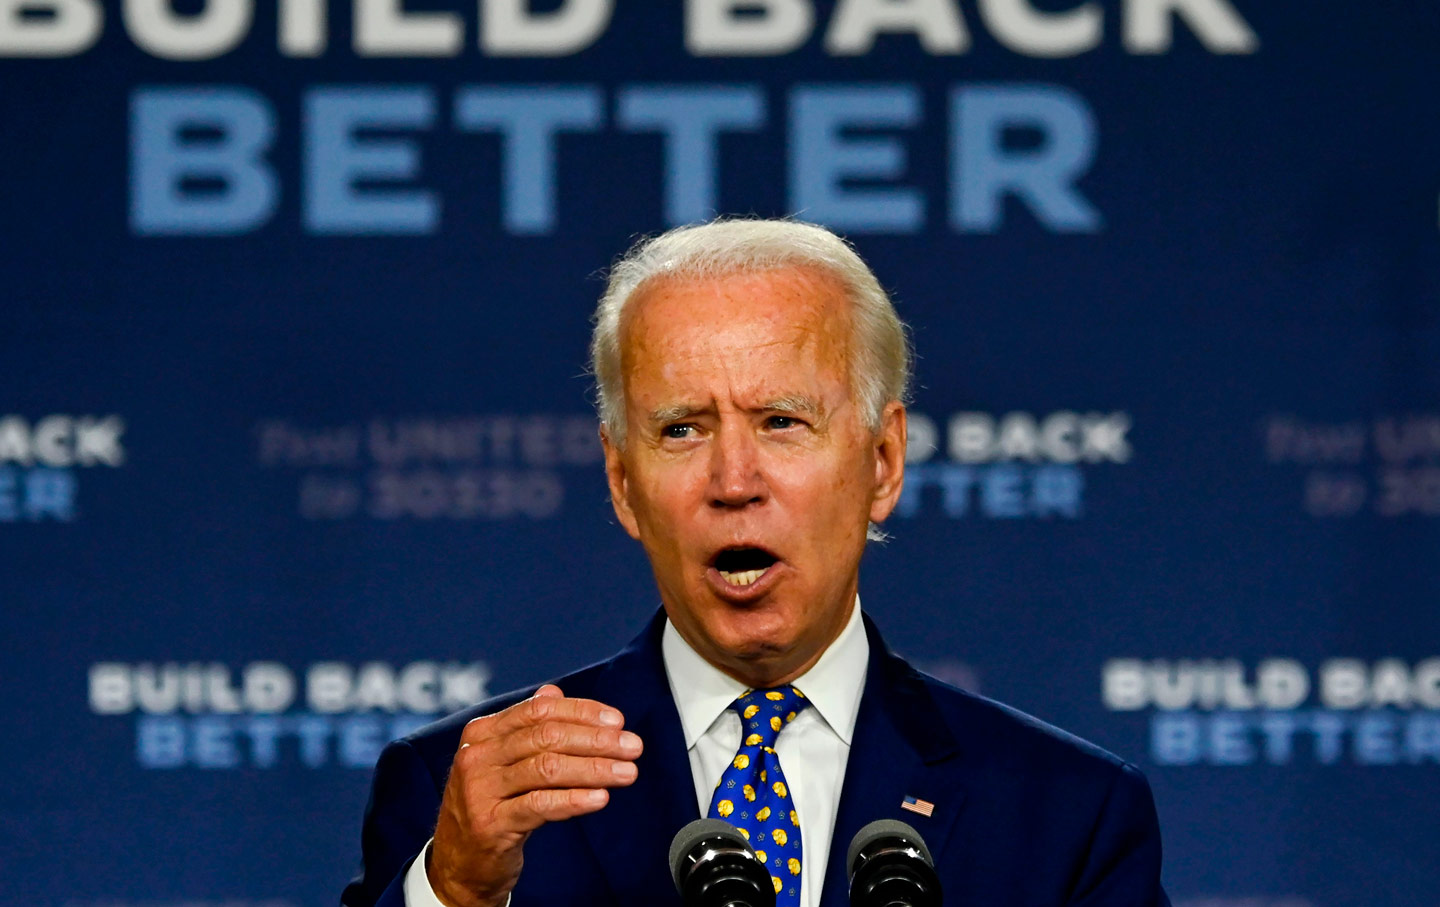 biden-build-back-better-speech-gty-img